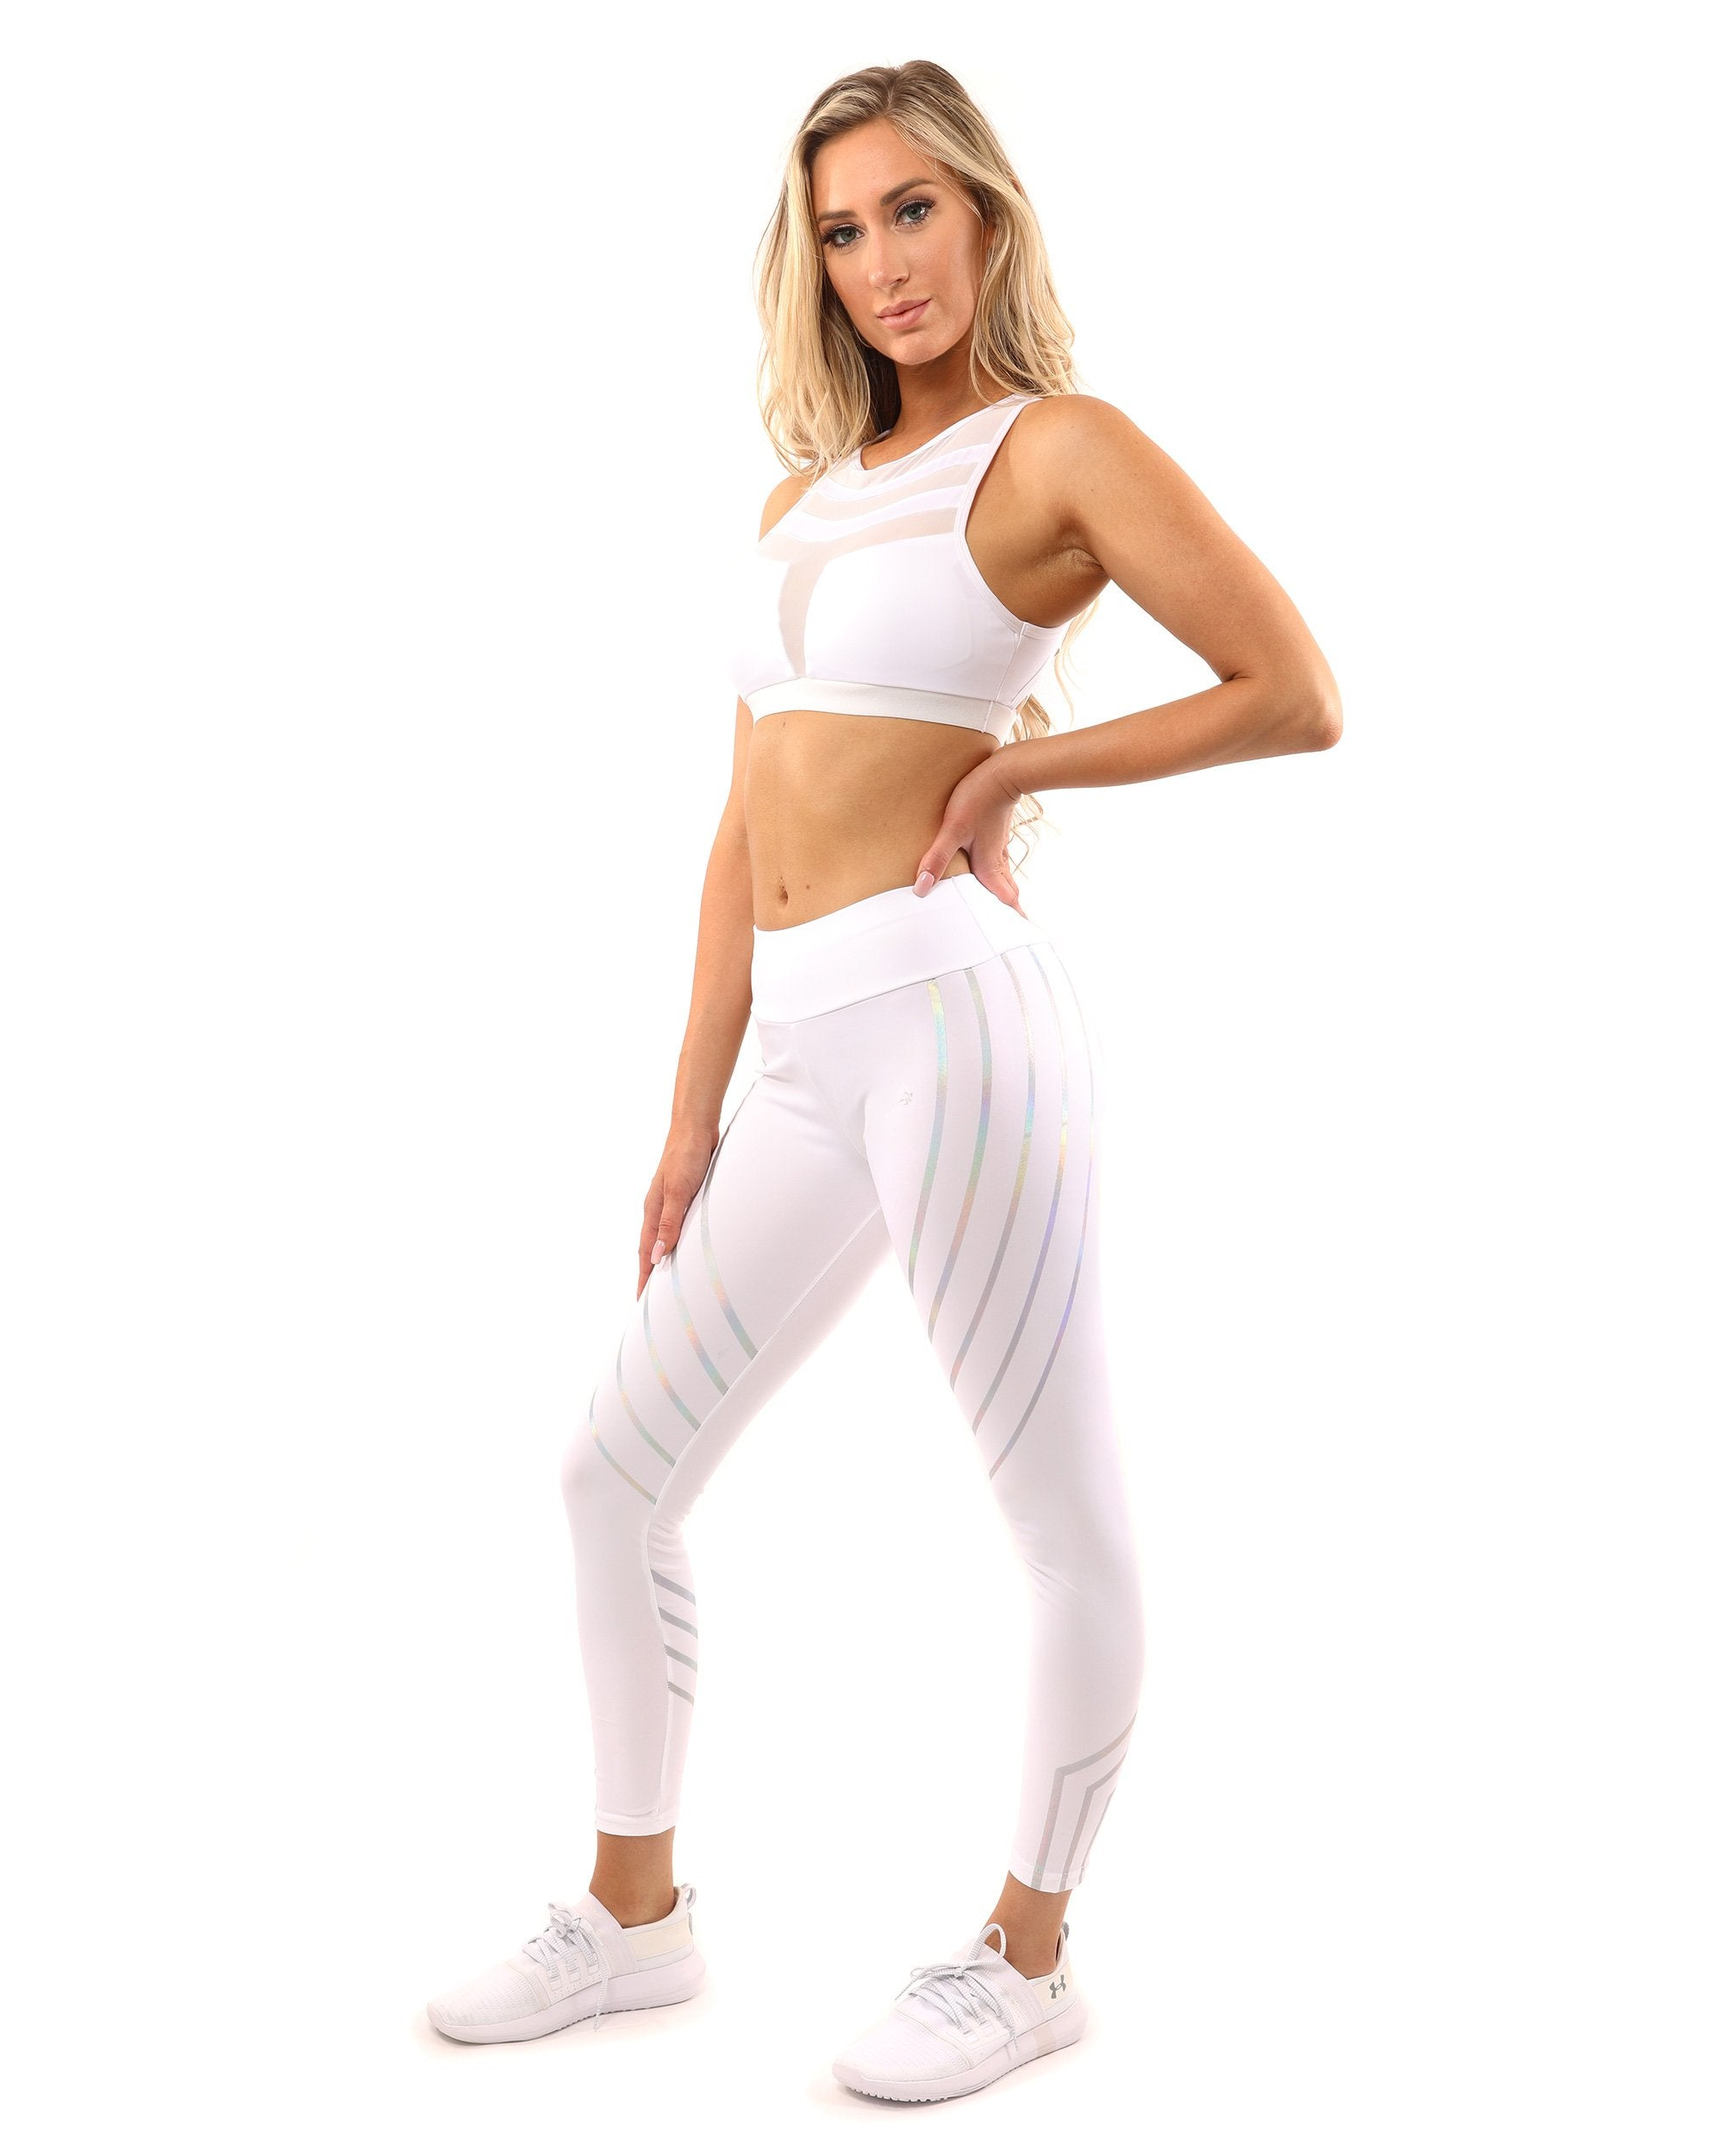 Laguna Sports Bra - White - Chic Athletics